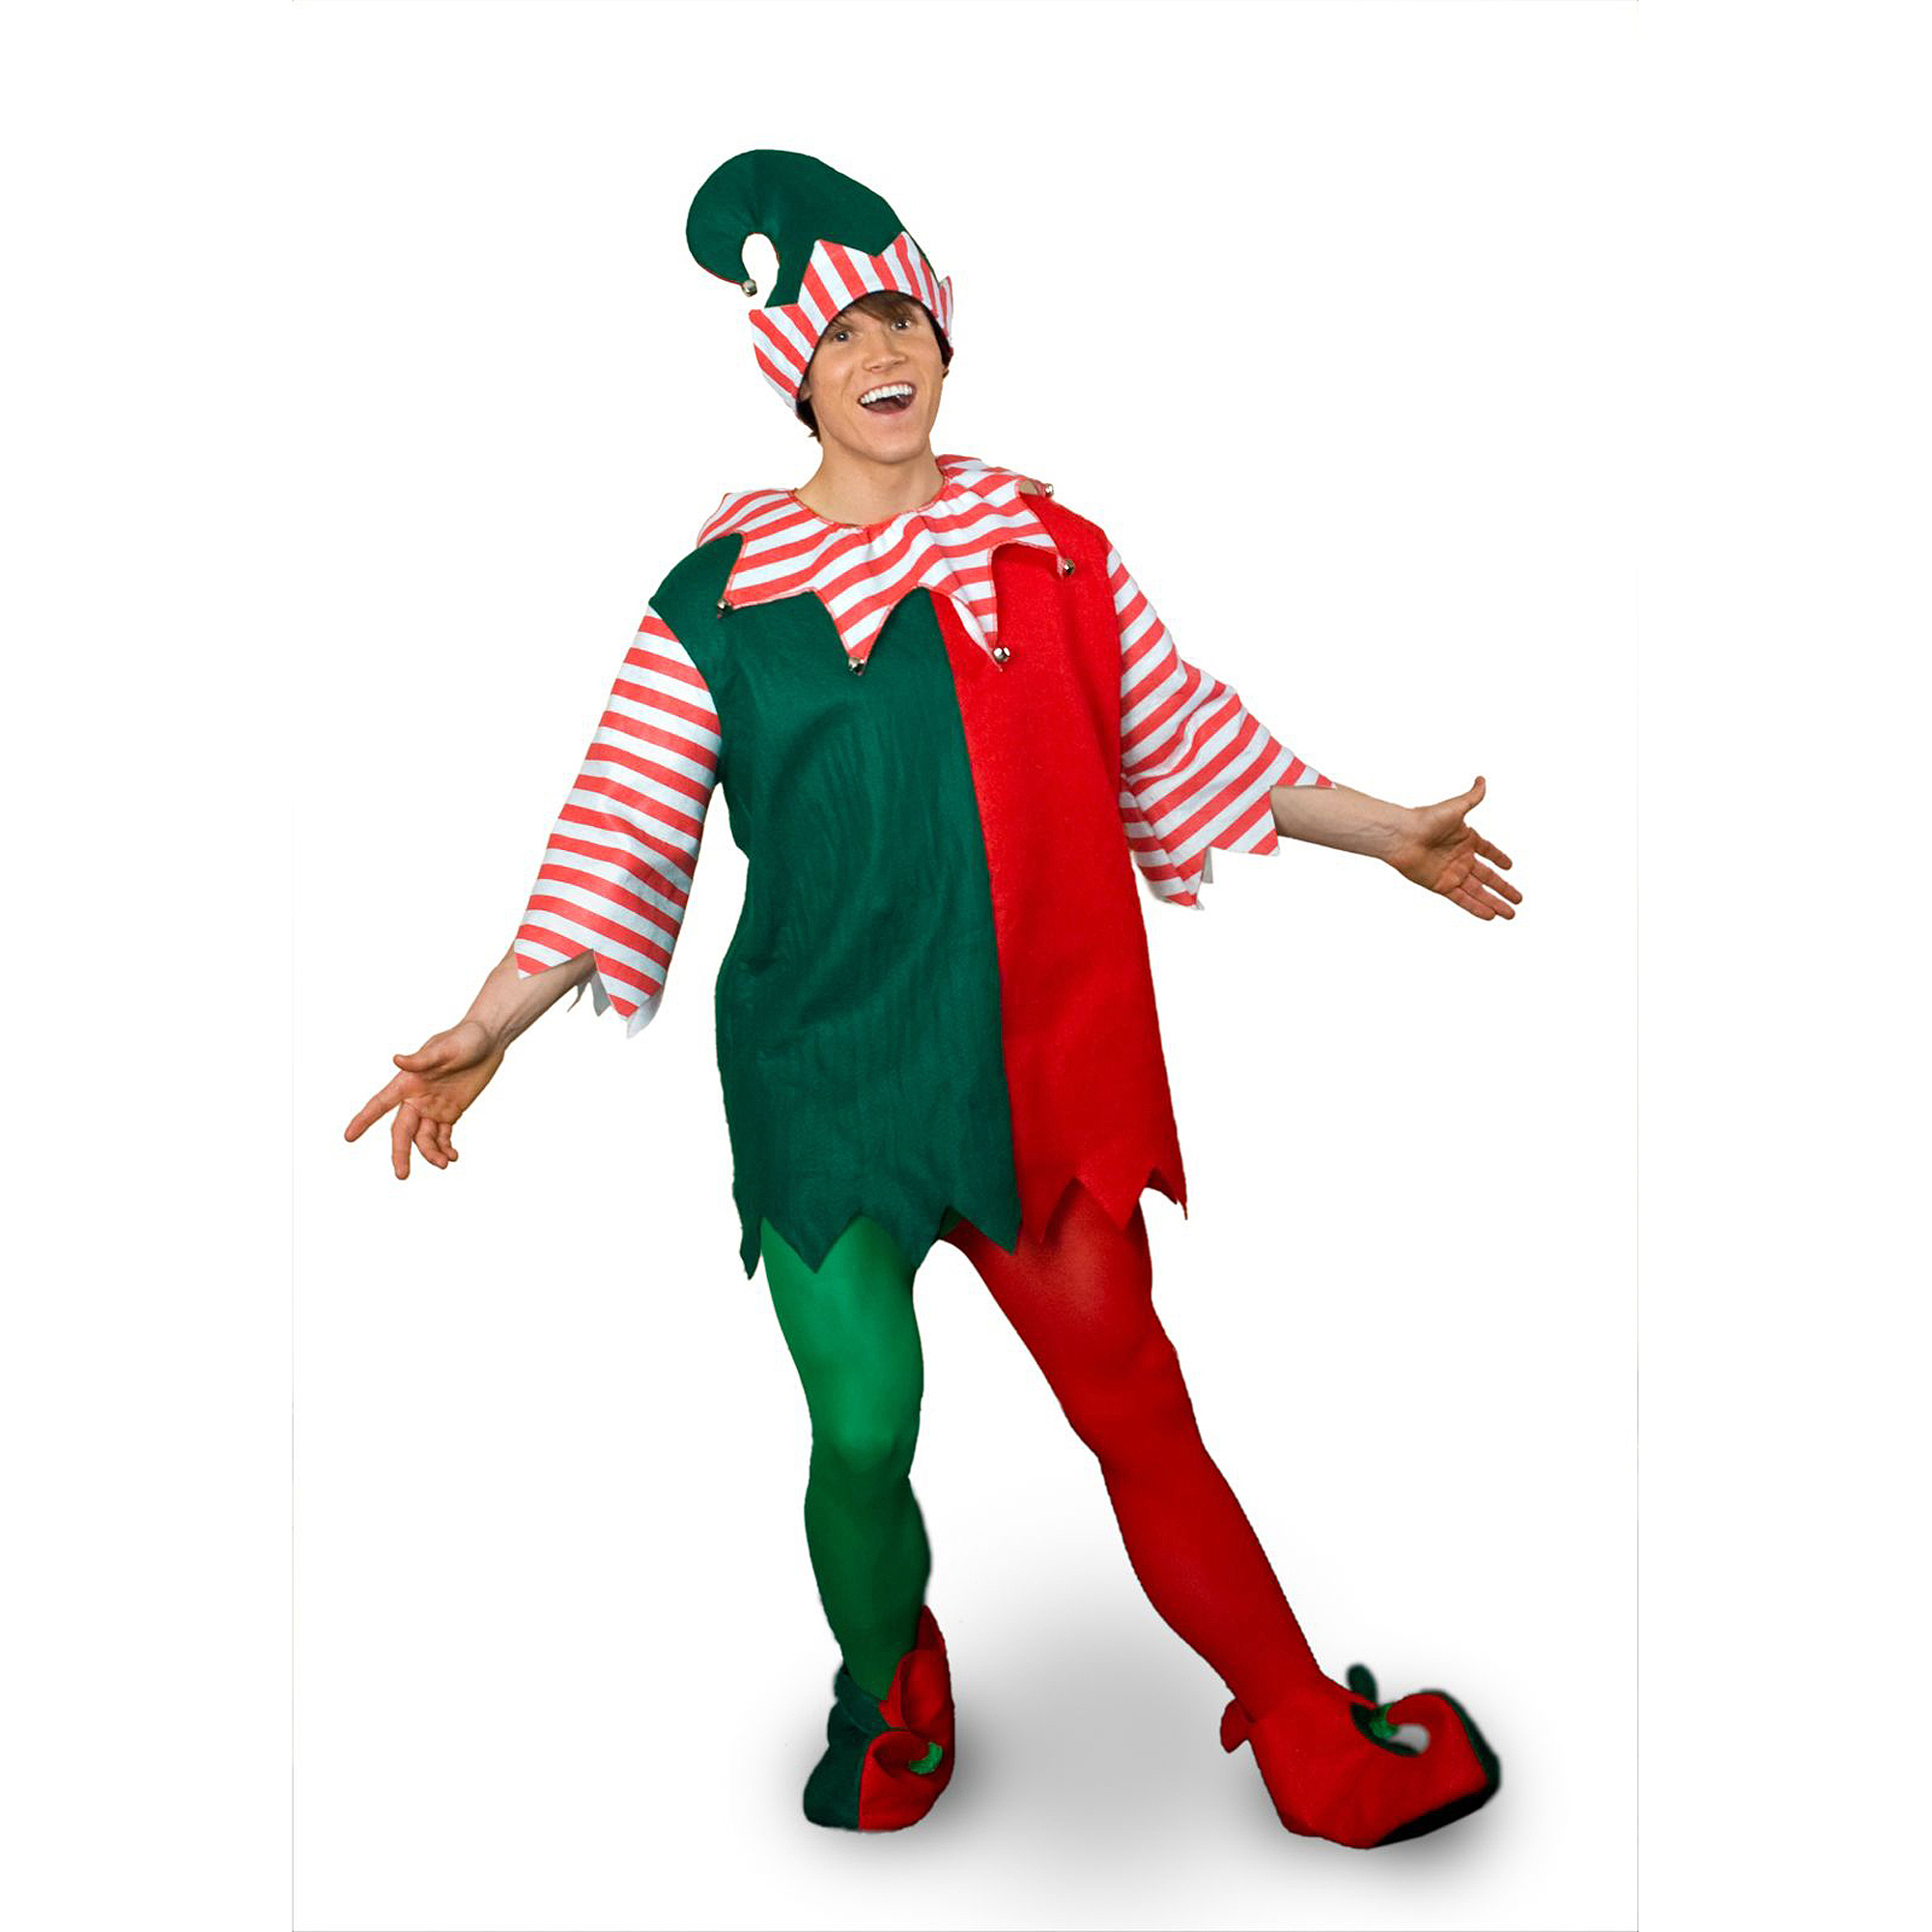 Sunnywood Elf Adult Costume